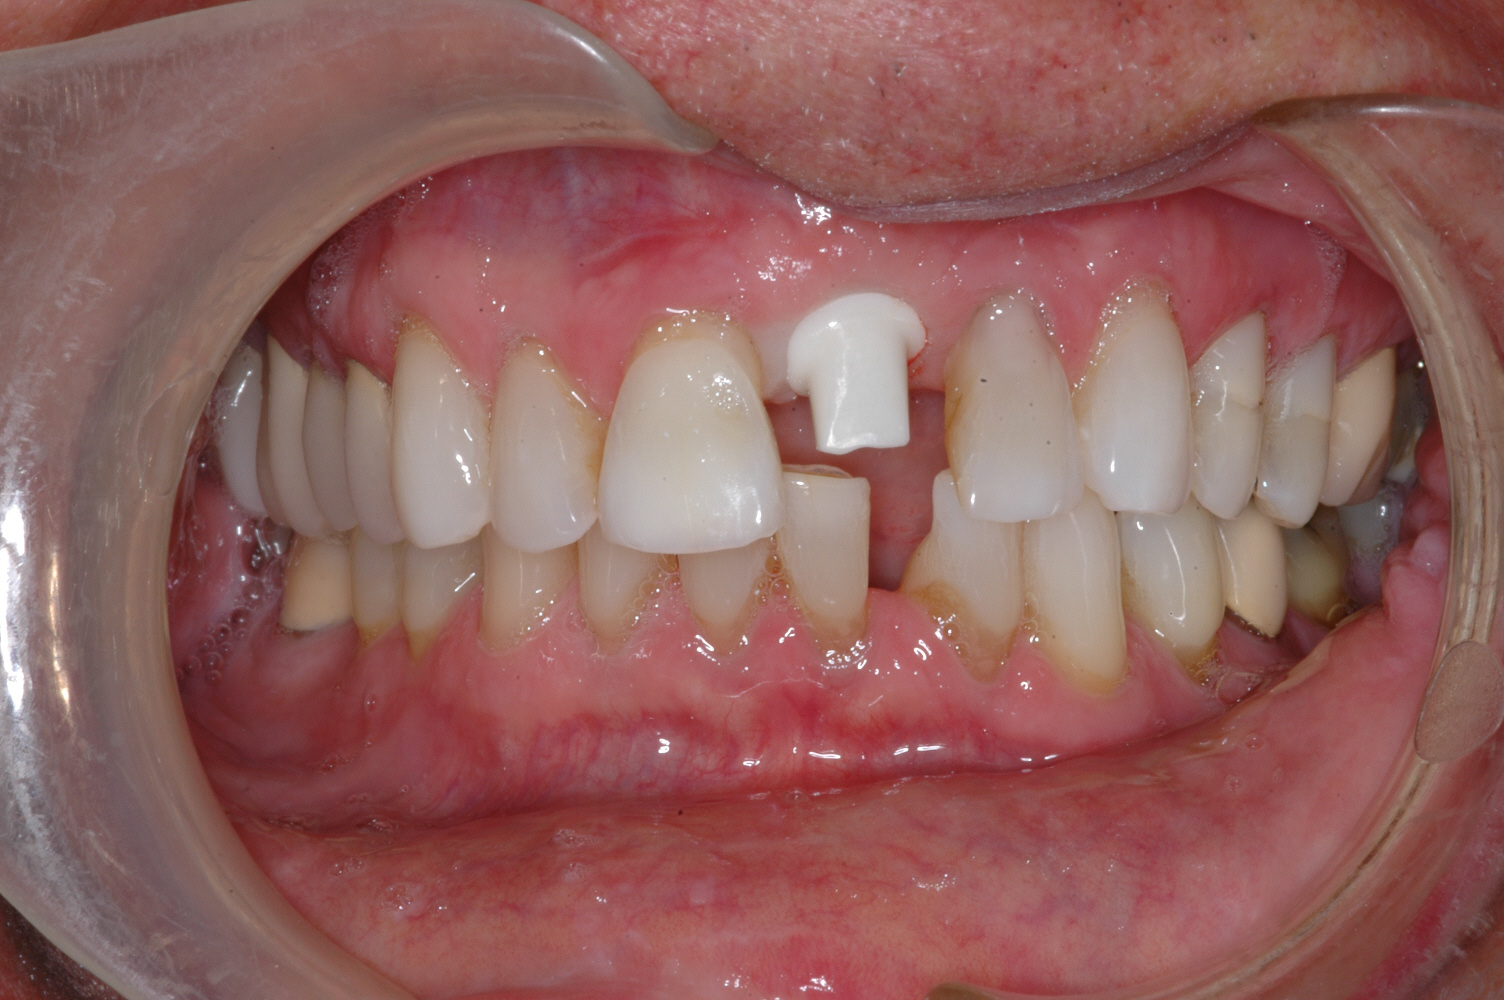 The patient had an implant placed and this is a custom zirconium abutment that will support his crown.